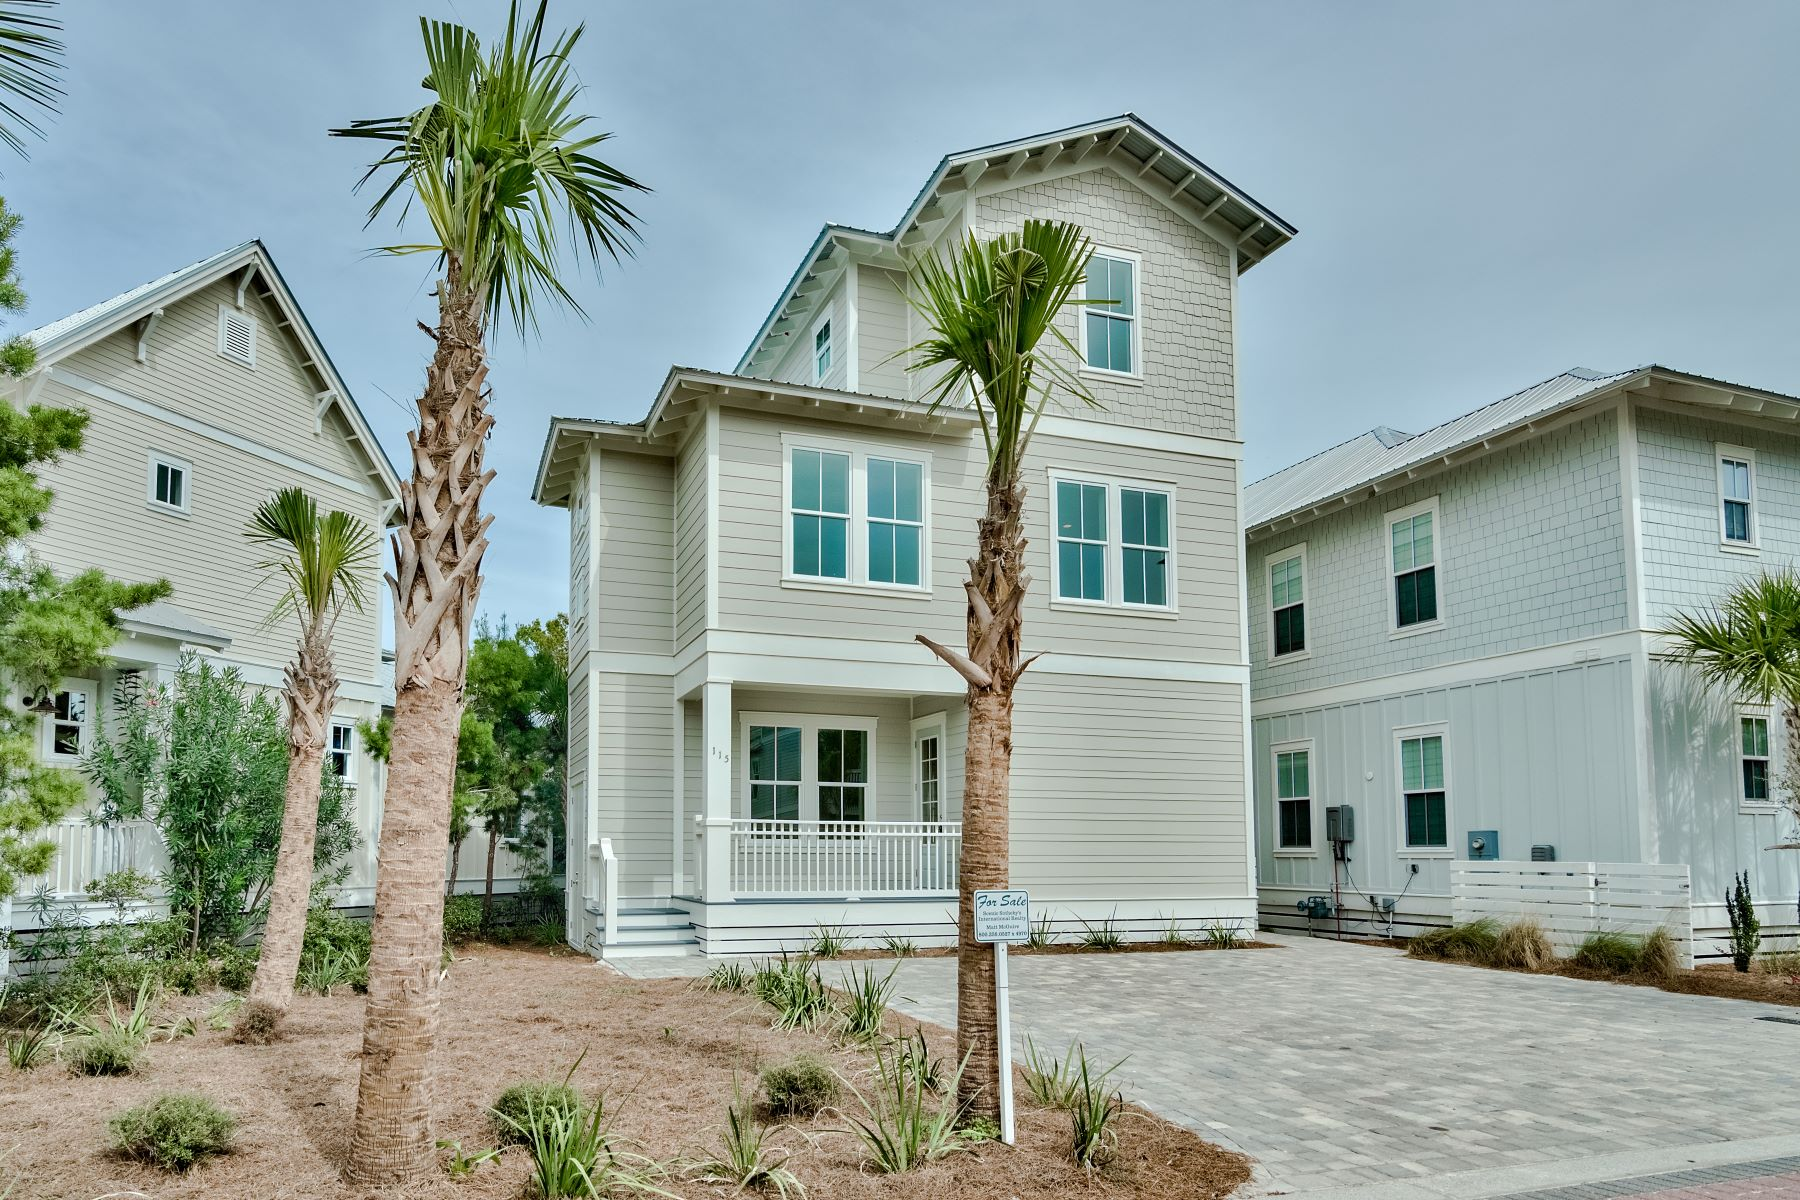 Single Family Homes for Sale at New House Offers Great Investment Opportunity 115 Flip Flop Lane Seacrest, Florida 32461 United States